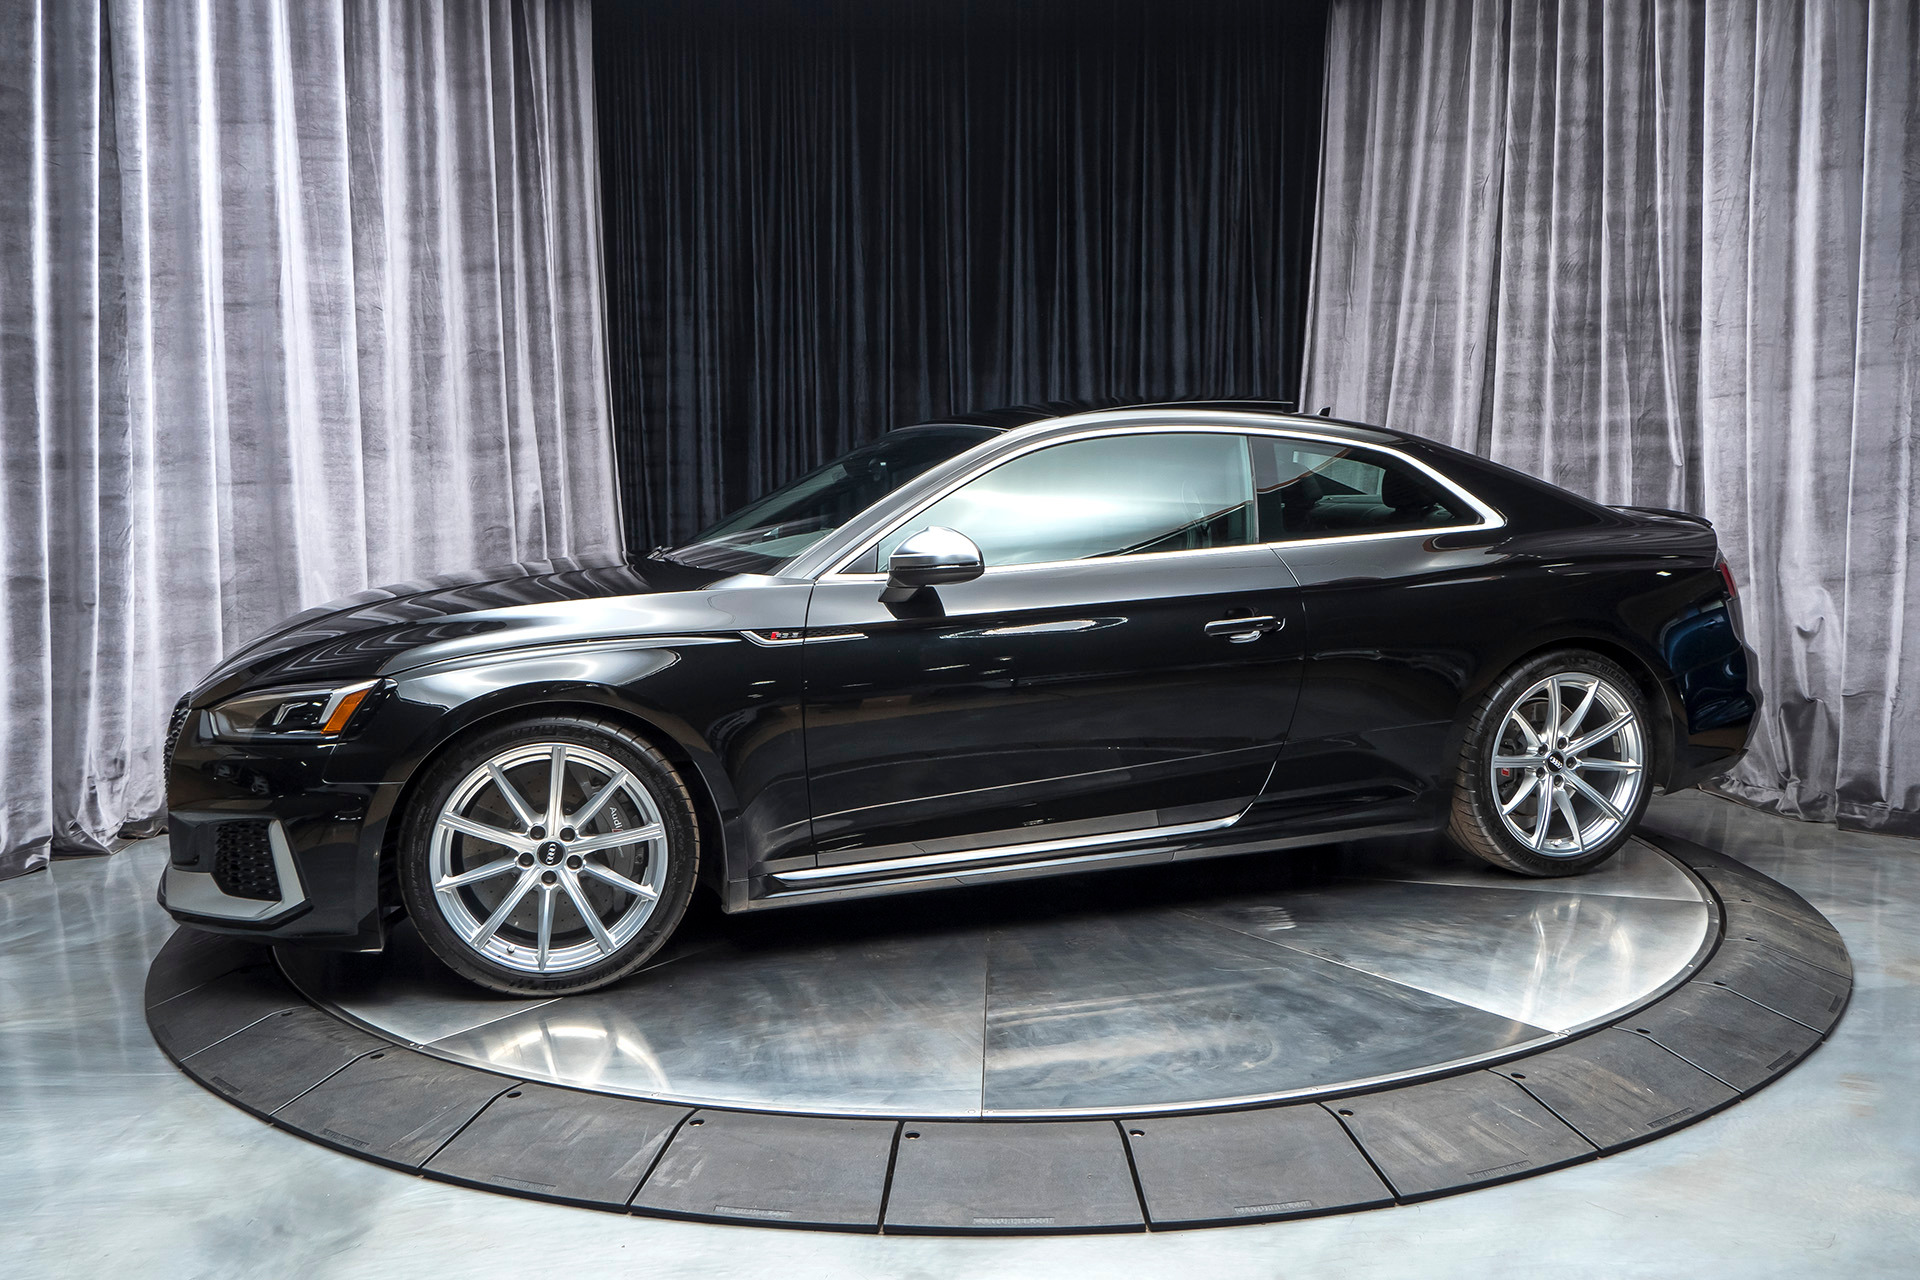 Used 2019 Audi Rs5 2 9t Quattro Coupe Msrp 87k Dynamic Plus Package For Sale Special Pricing Chicago Motor Cars Stock 16688